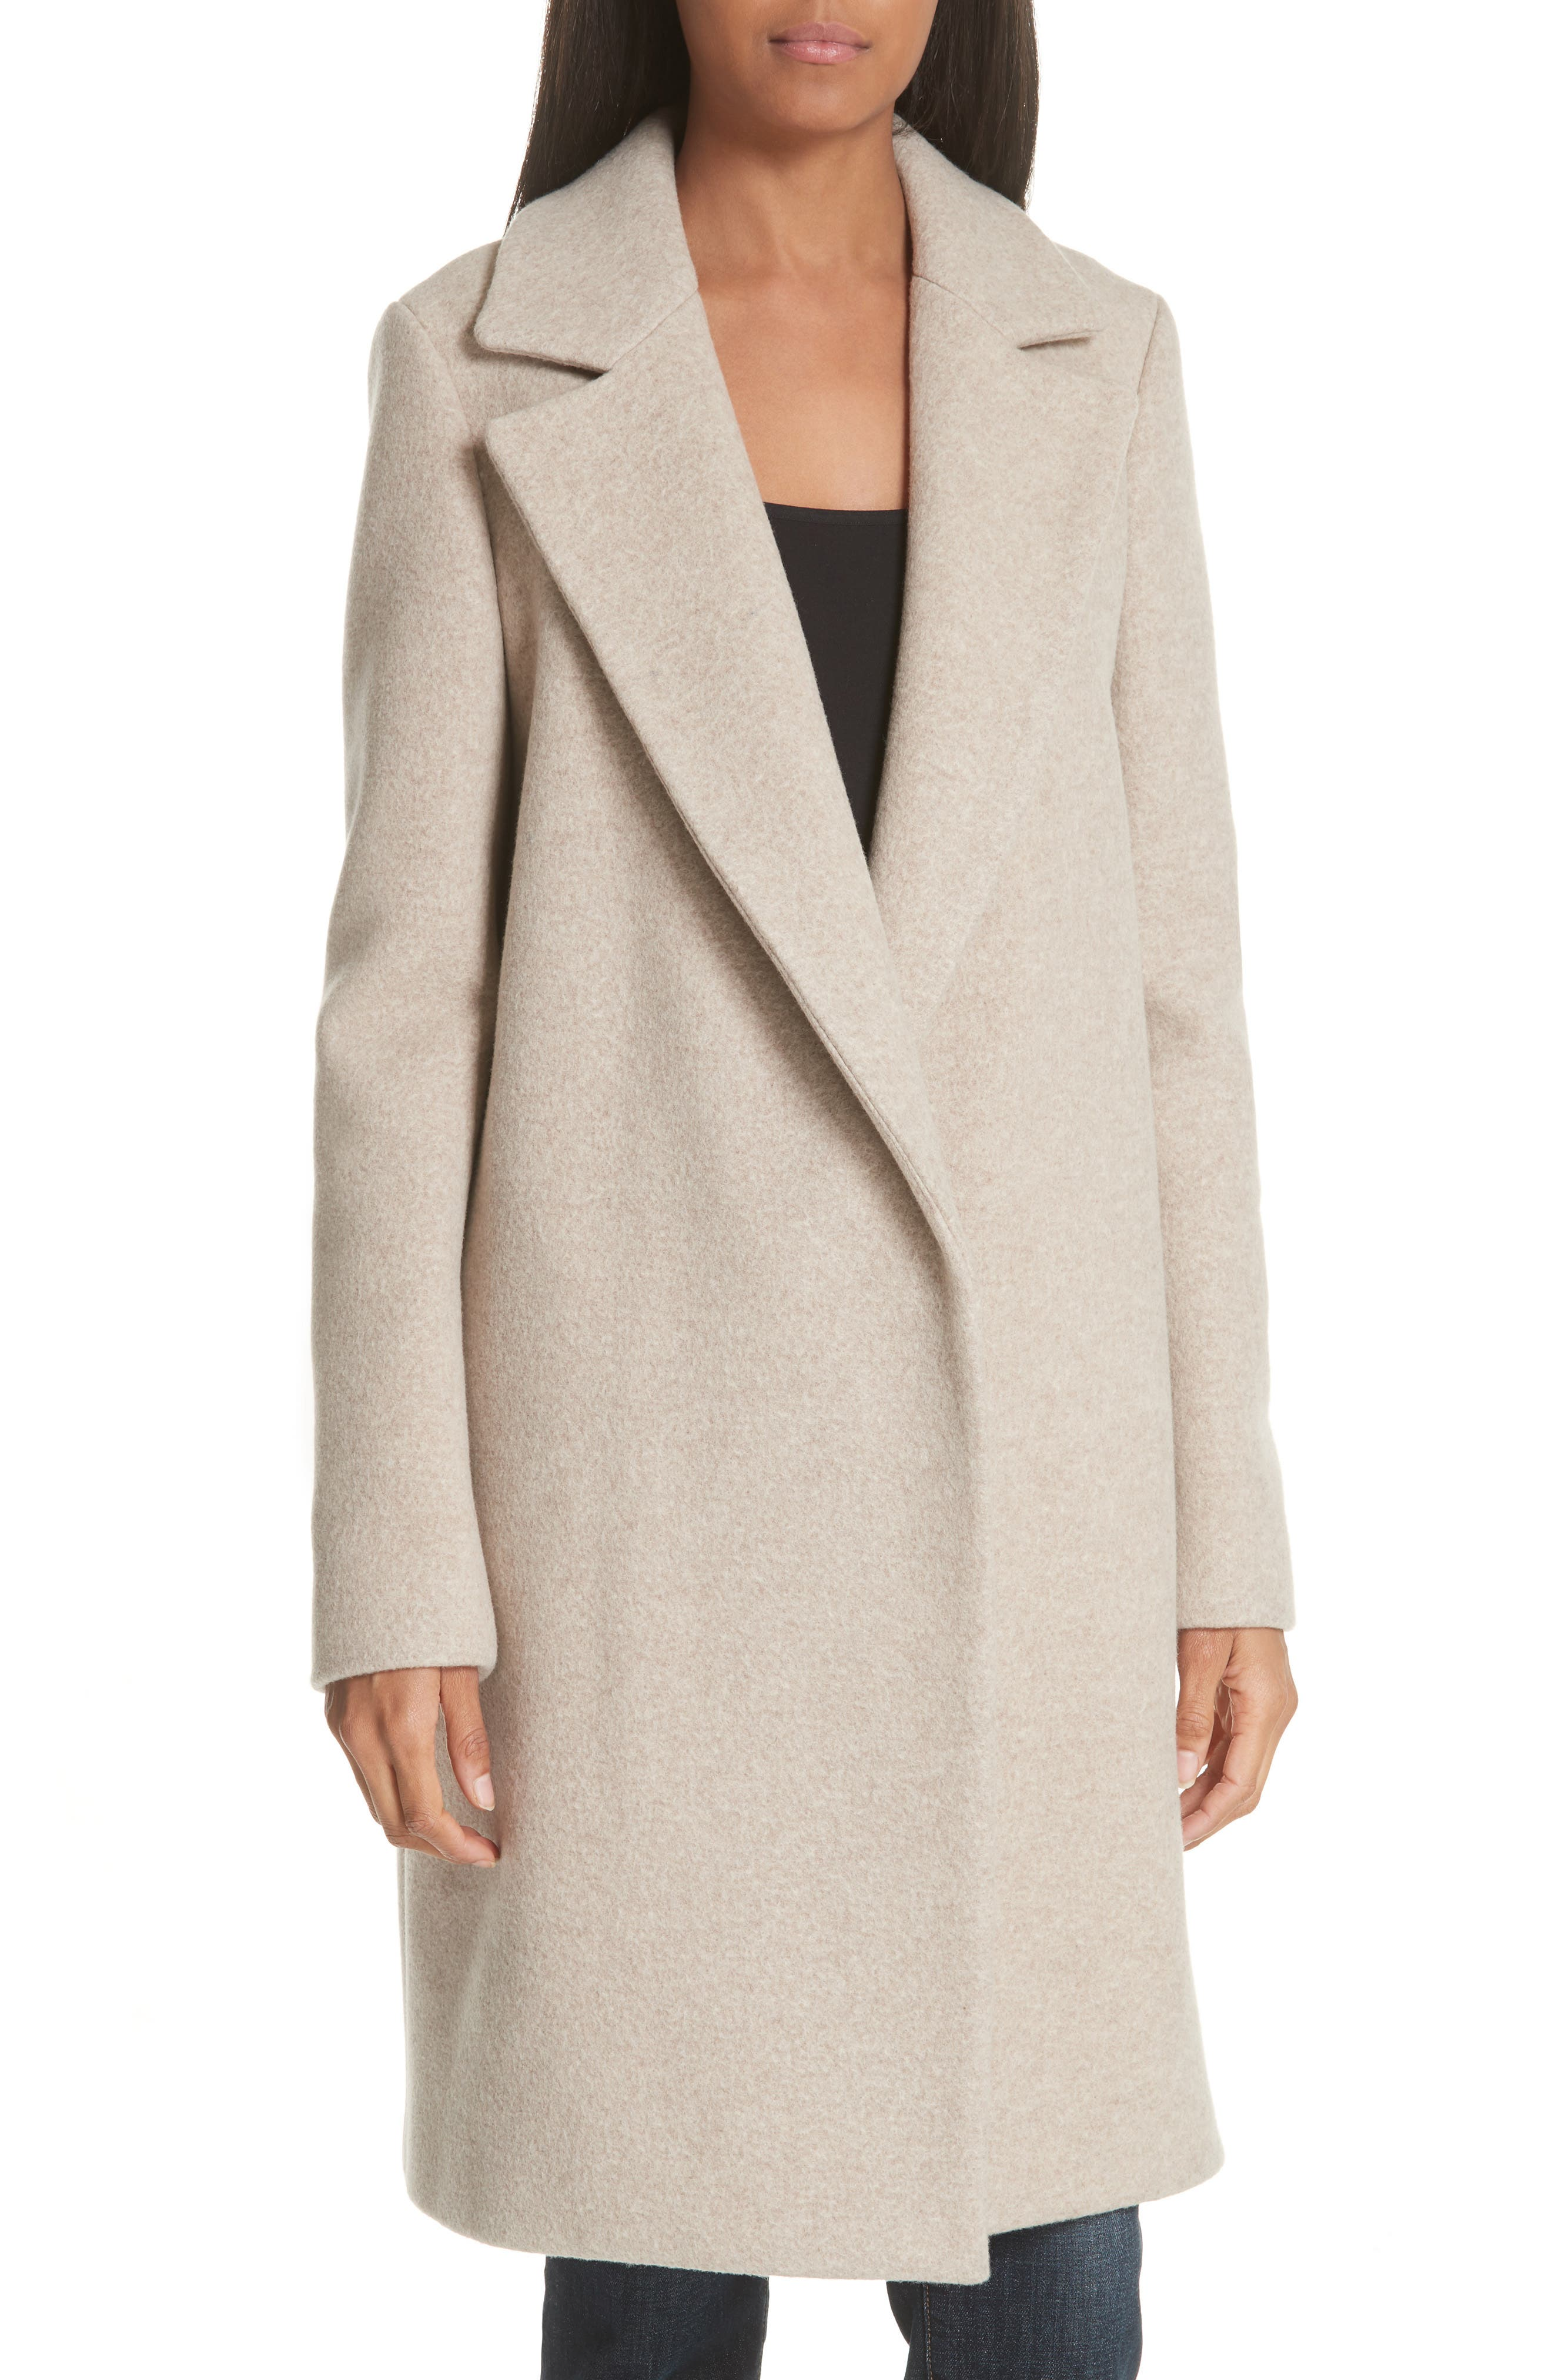 Clairene Hawthorne Wool Cashmere Coat,                         Main,                         color, 260